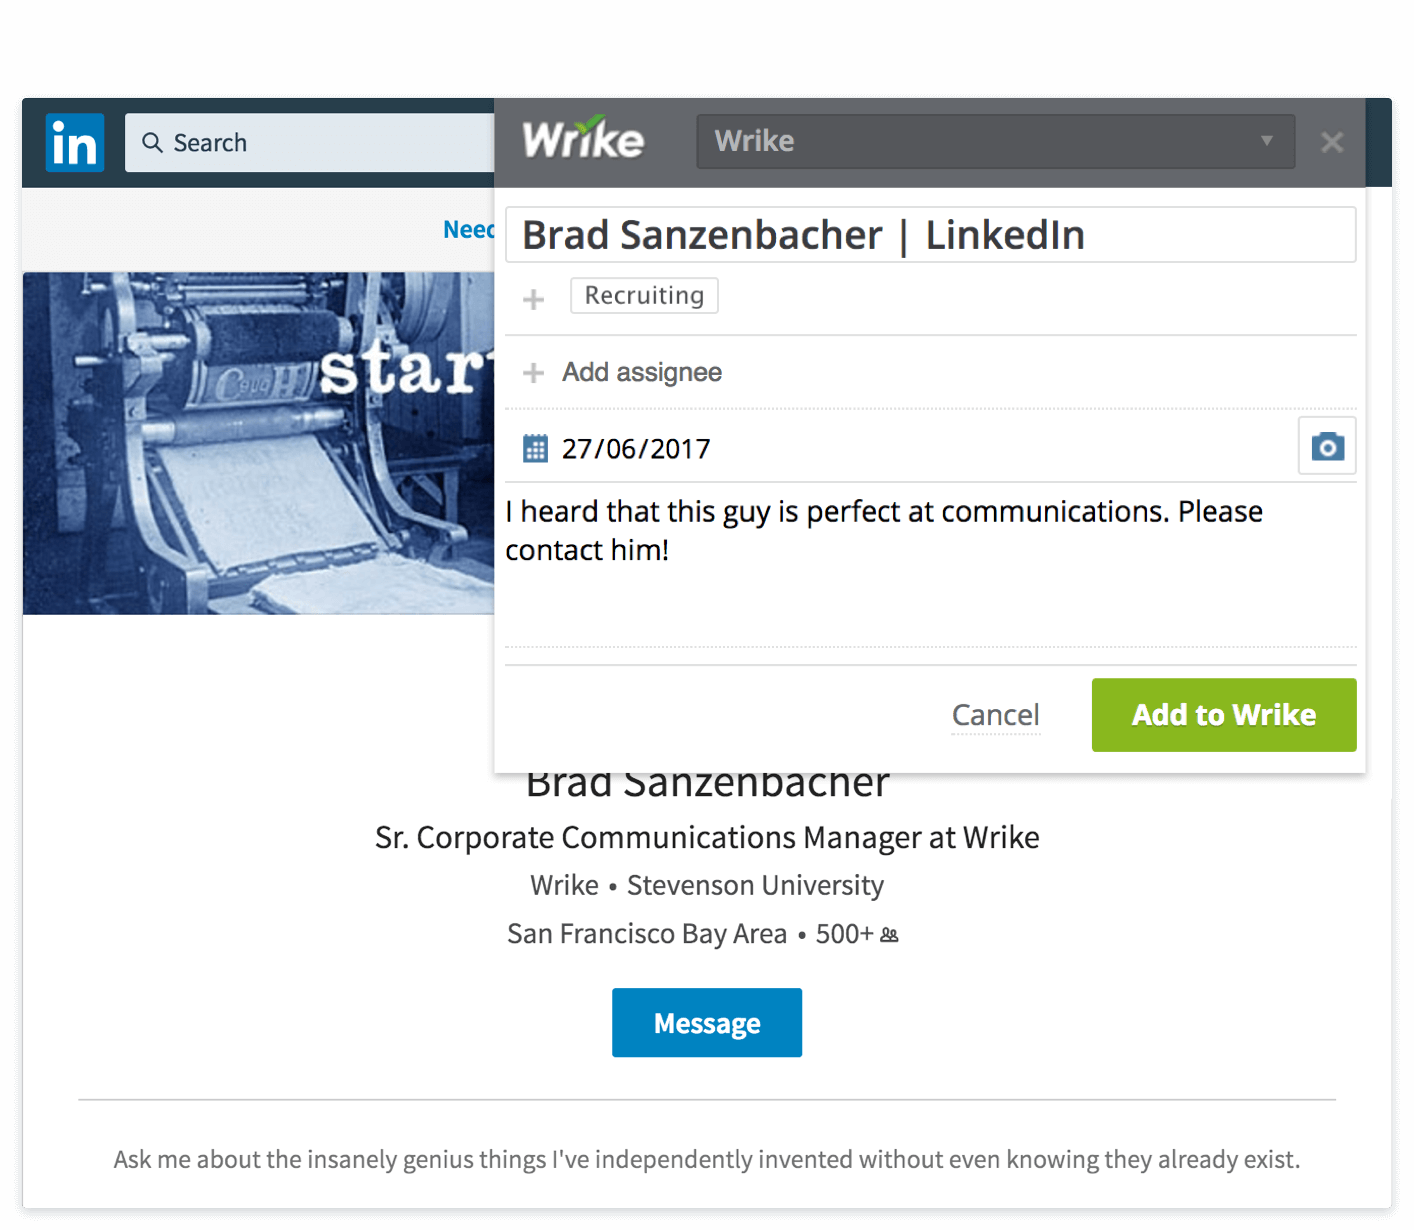 Wrike Integration With Linkedin